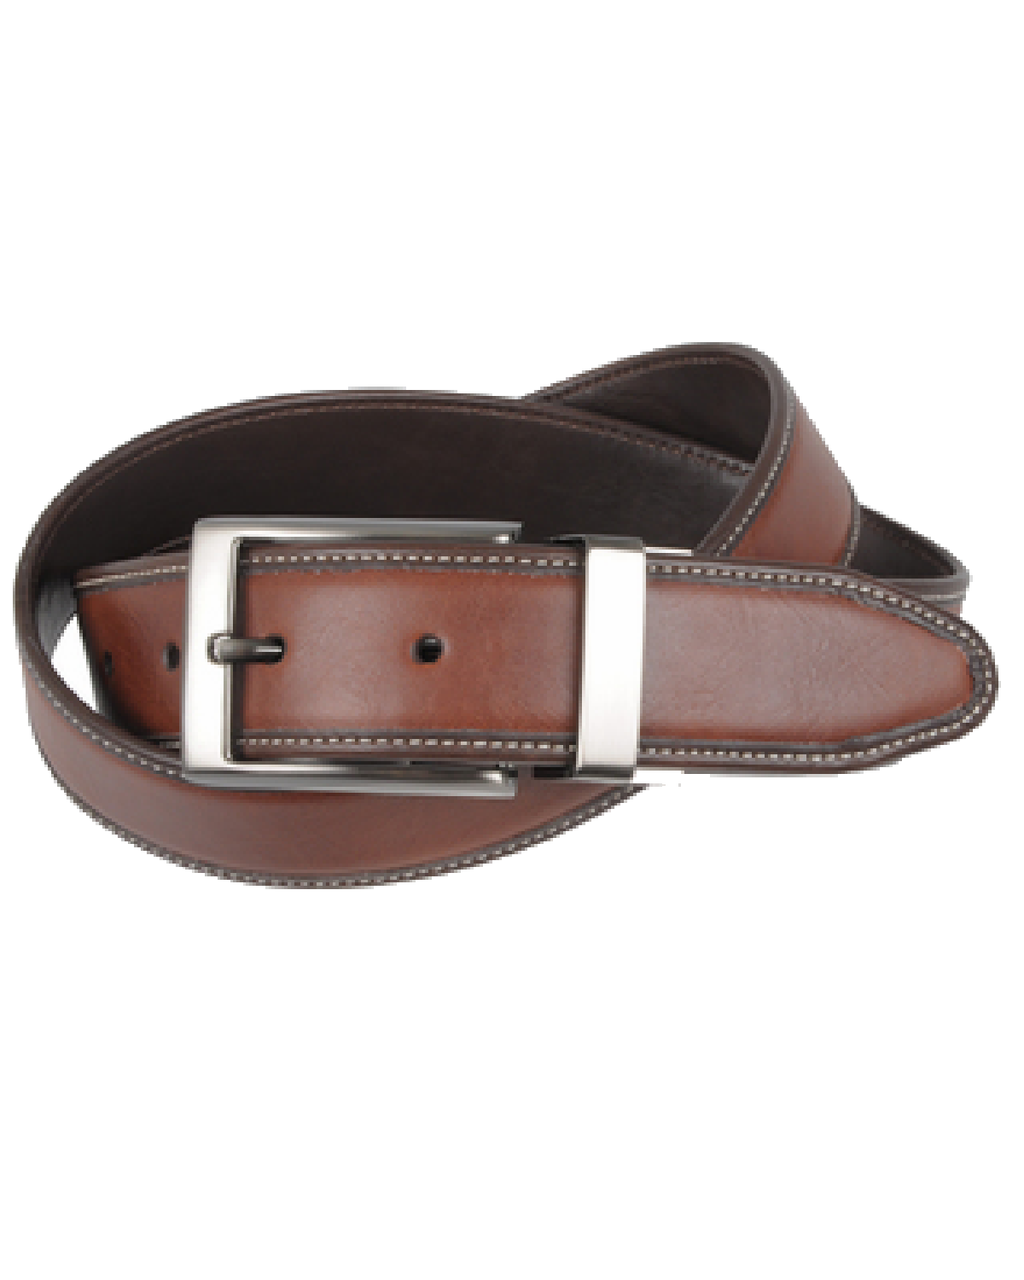 Geoffrey Beene Men's Reversible Leather Belt-GEOFFREY BEENE-Fashionbarn shop